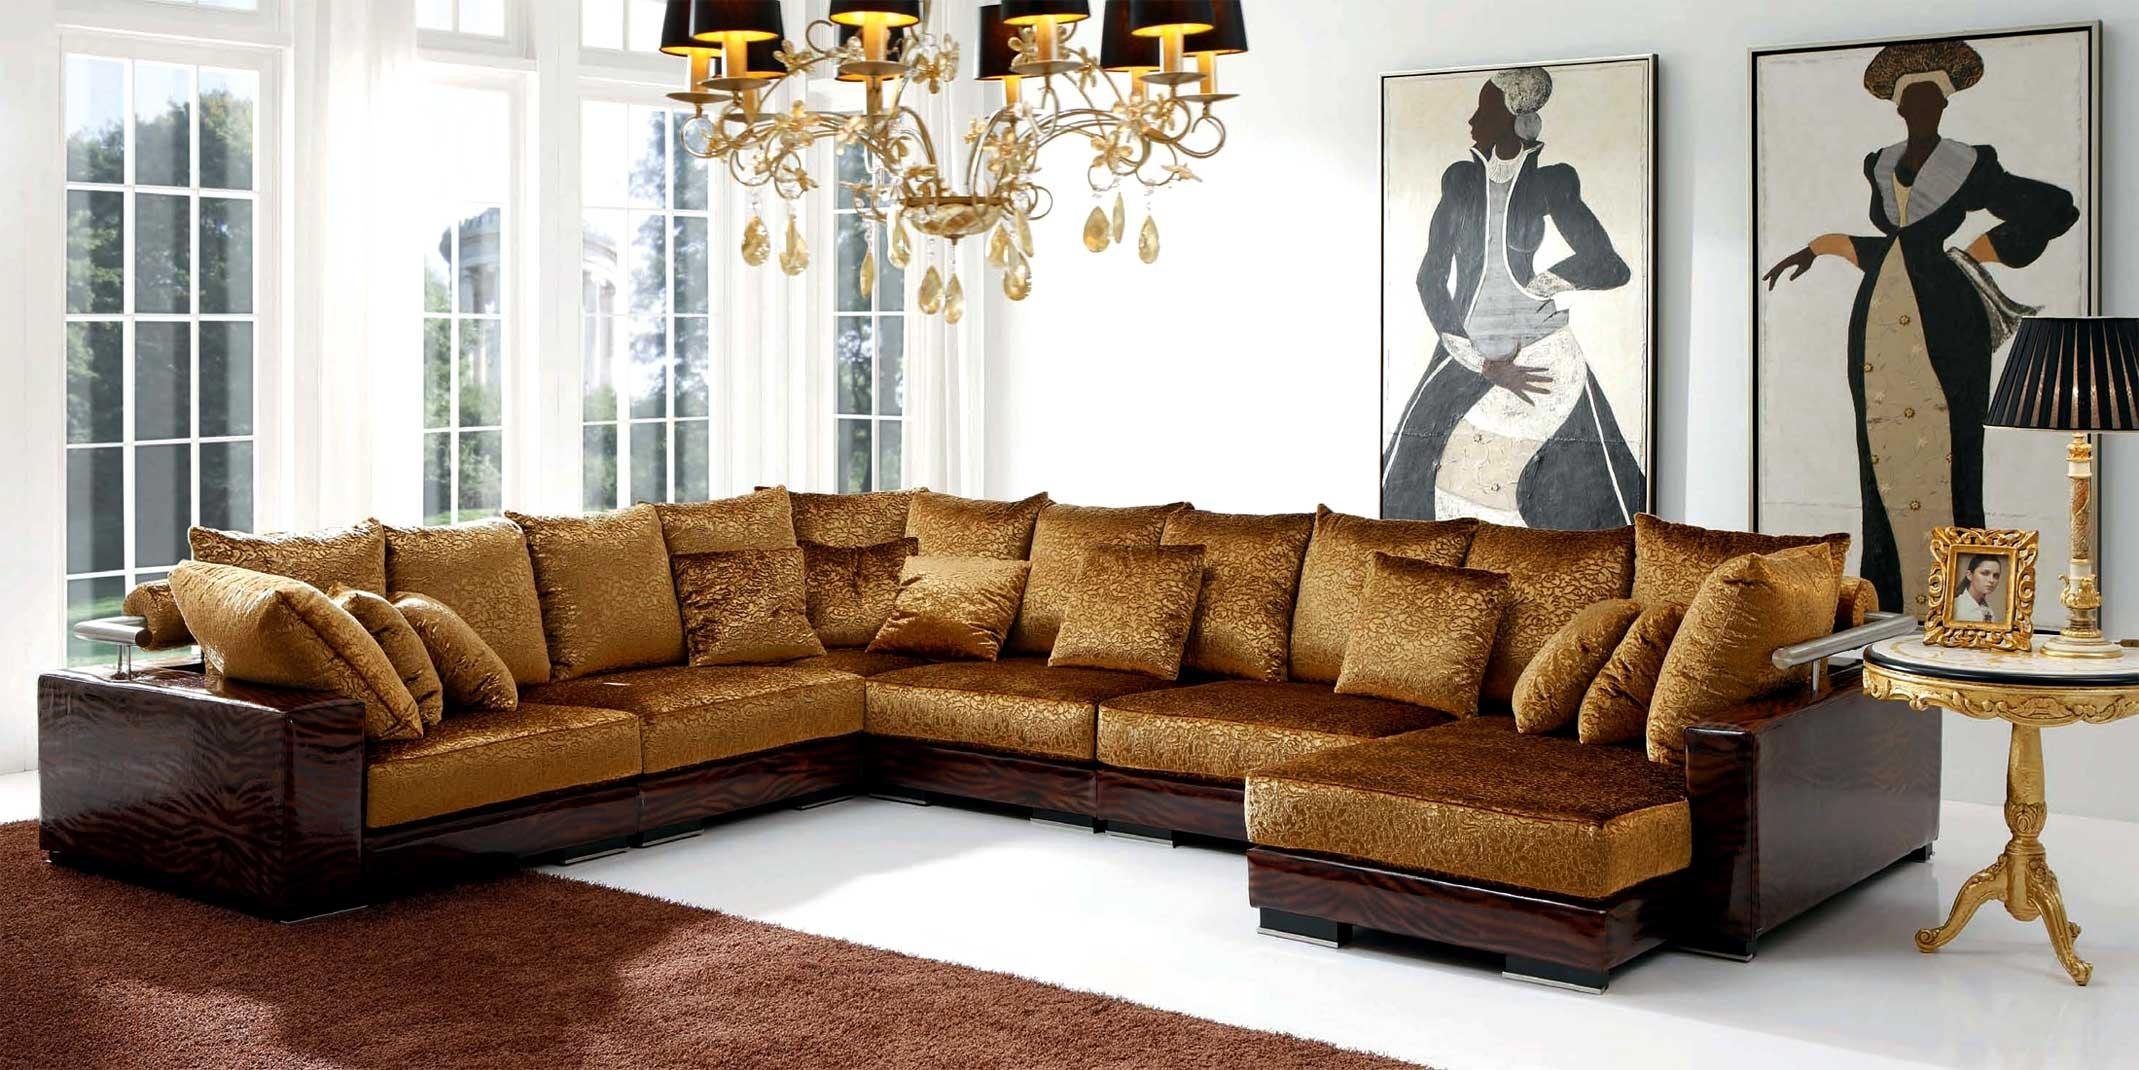 Expensive Sectional Sofas – Leather Sectional Sofa Intended For Gold Sectional Sofa (View 11 of 15)